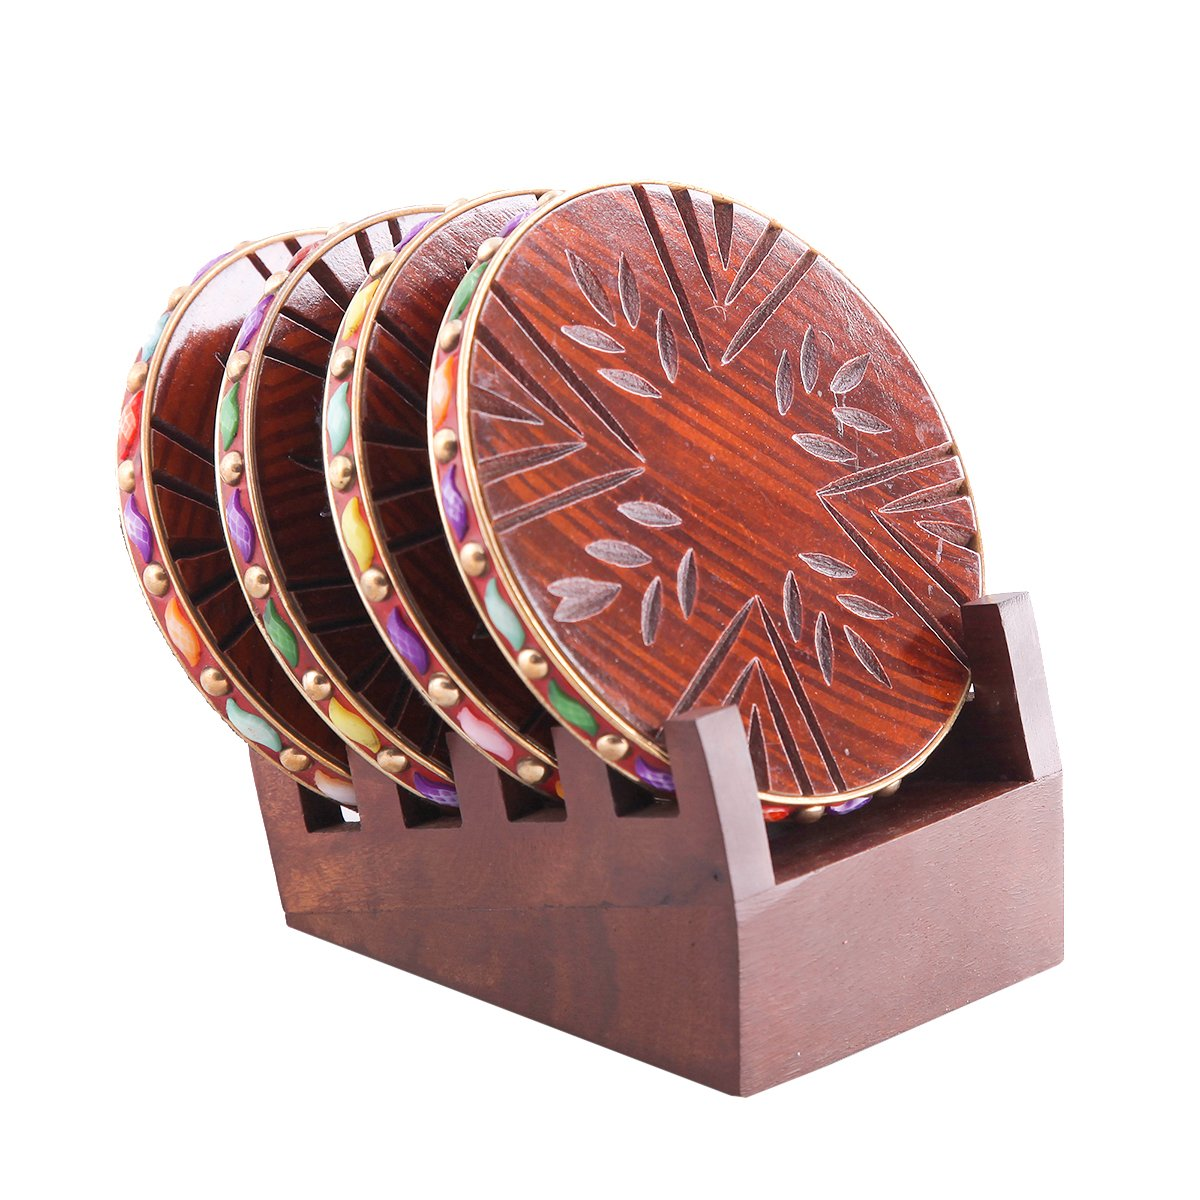 The Royal Collection Handmade Coasters Leaf Carving Design Set of 4 With Coaster Holder